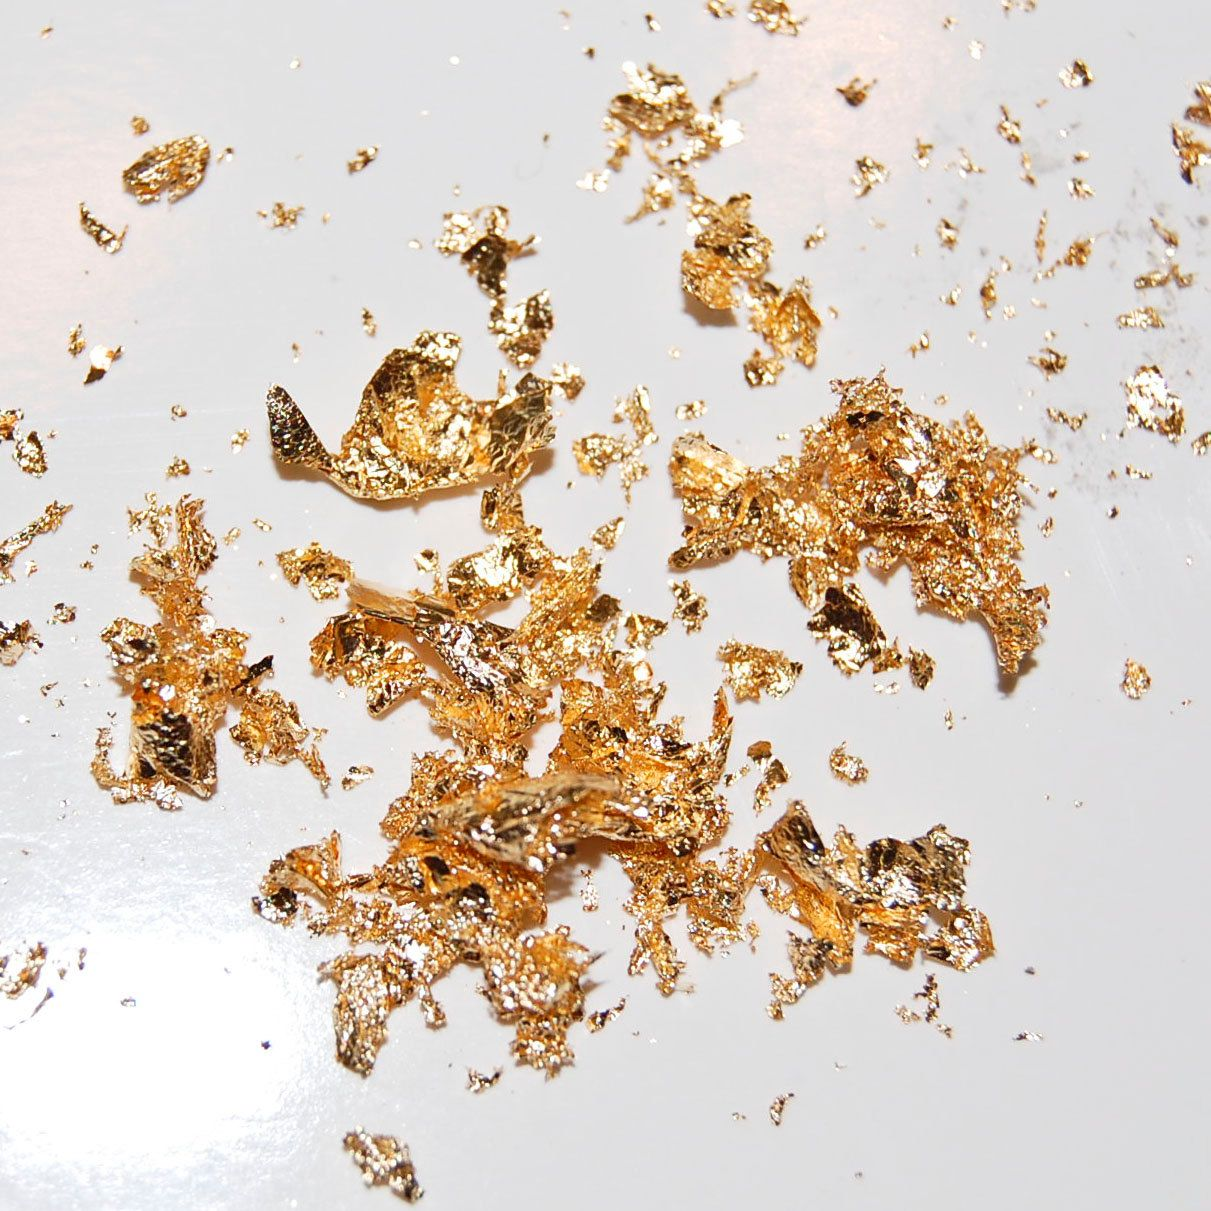 Little Bit O Gold Small Vial Of Gold Leaf Flakes Etsy Paper Art Projects Glitter Crafts Art Projects